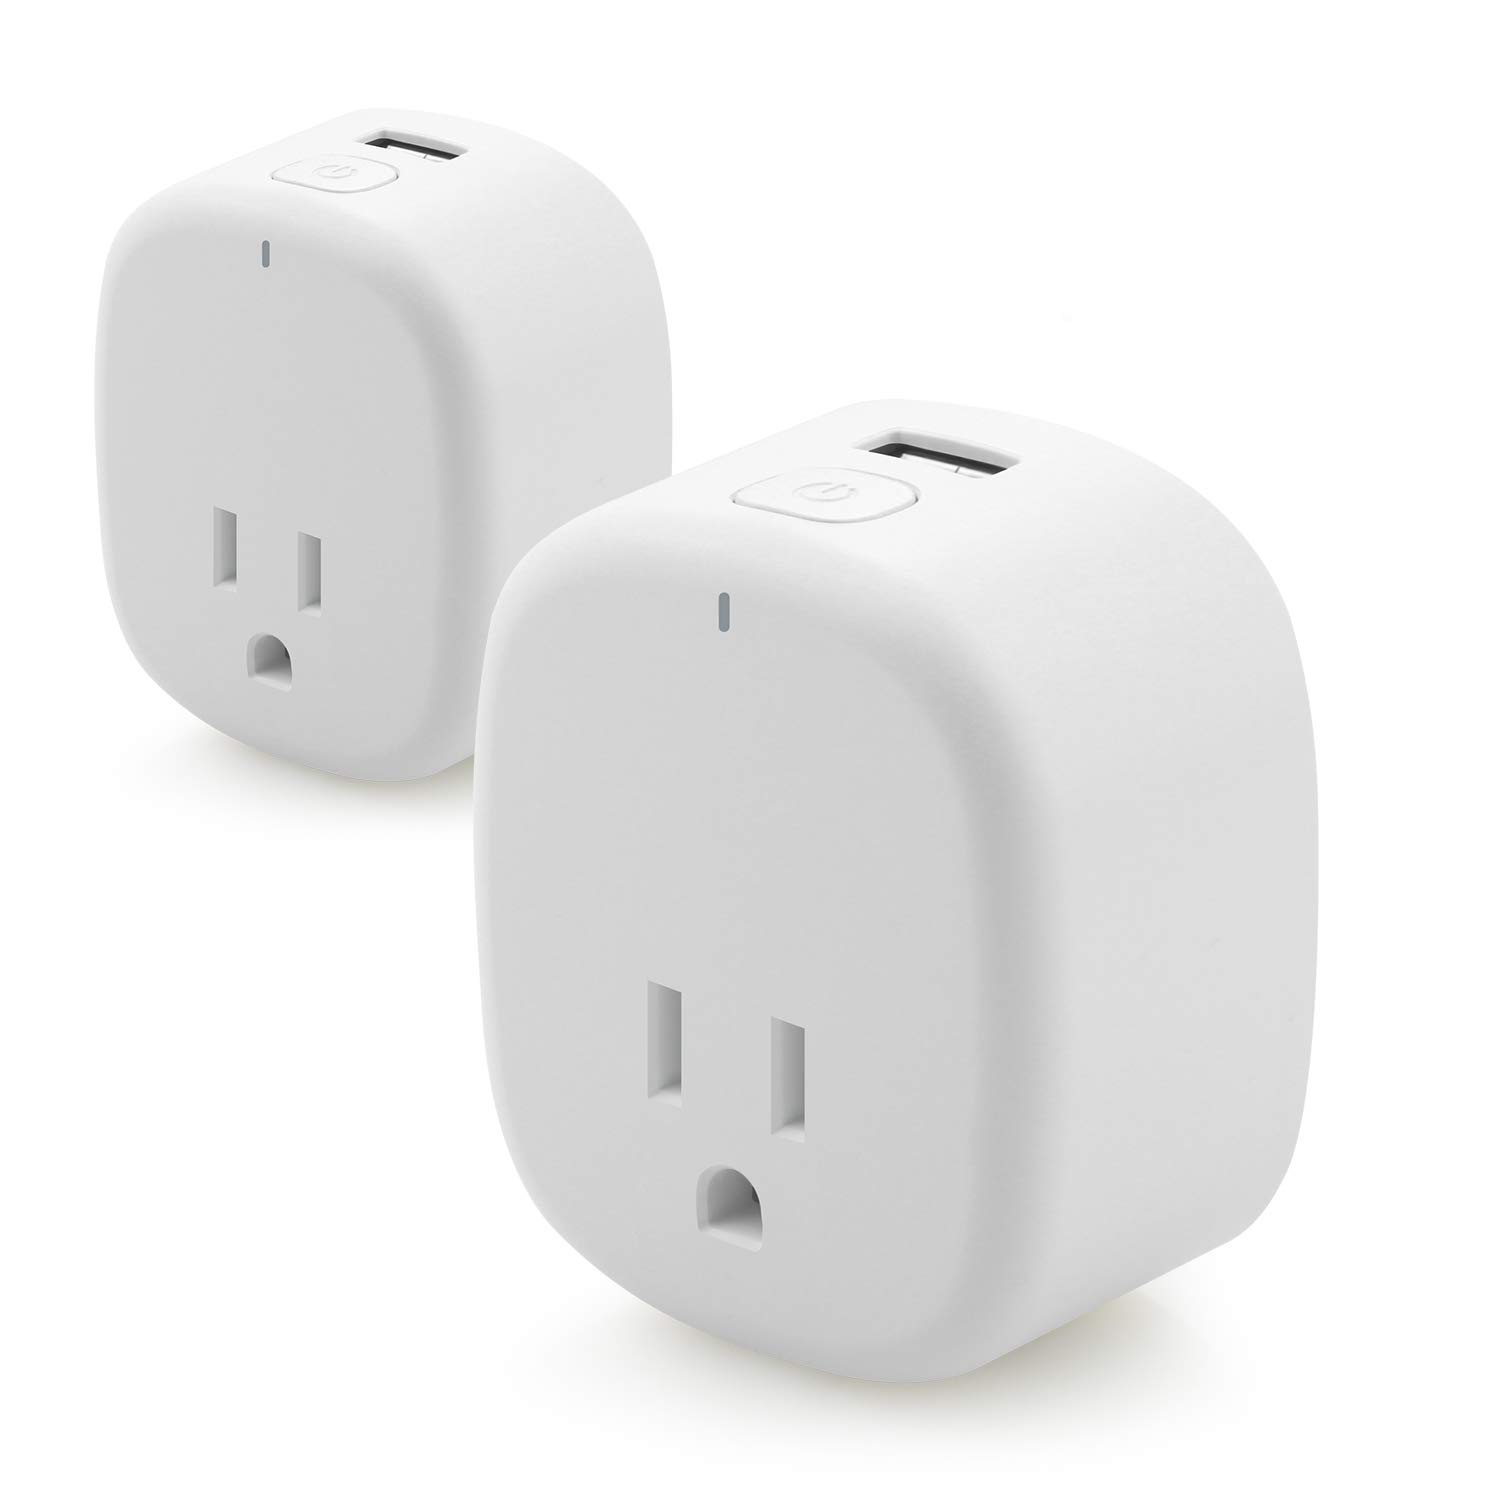 WiFi Smart Plug Mini Outlet, FayTun Mini Socket Outlet Energy Monitoring, Work with Amazon Alexa Echo,Google Assistant,ifttt, No Hub Required, Remote Control by APP with Timing Function[2 Pack]